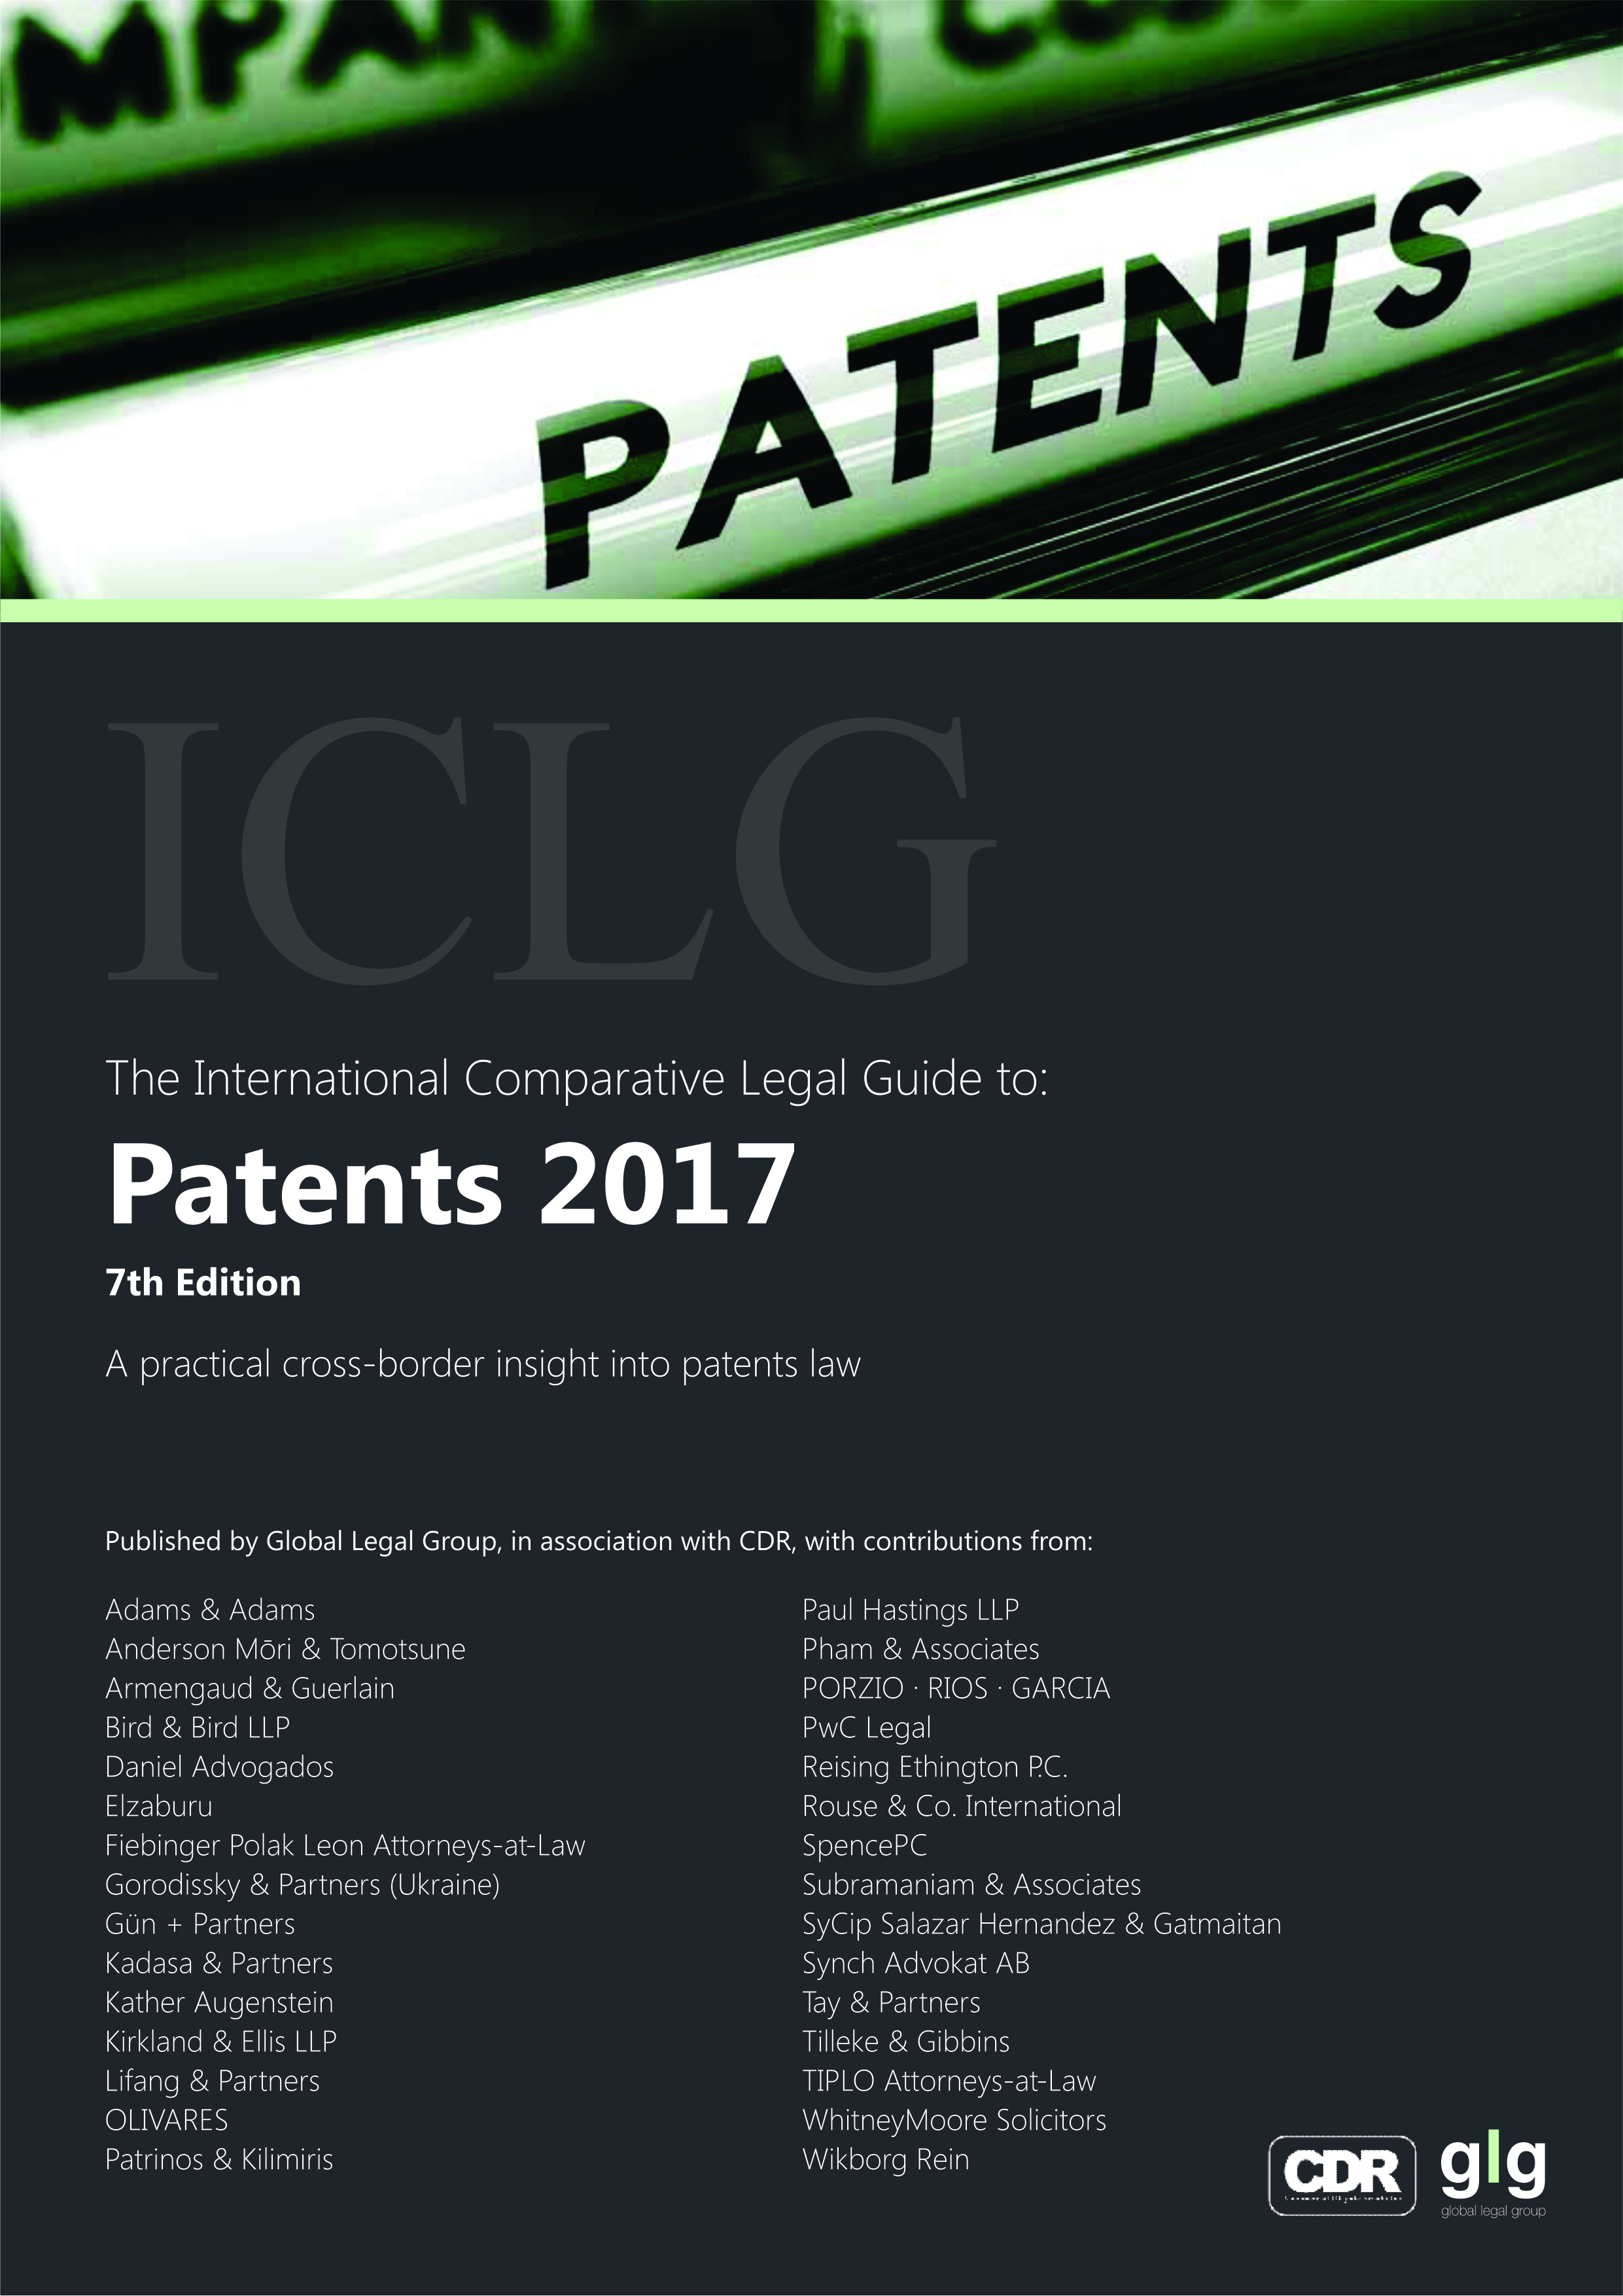 ICLG-Patents